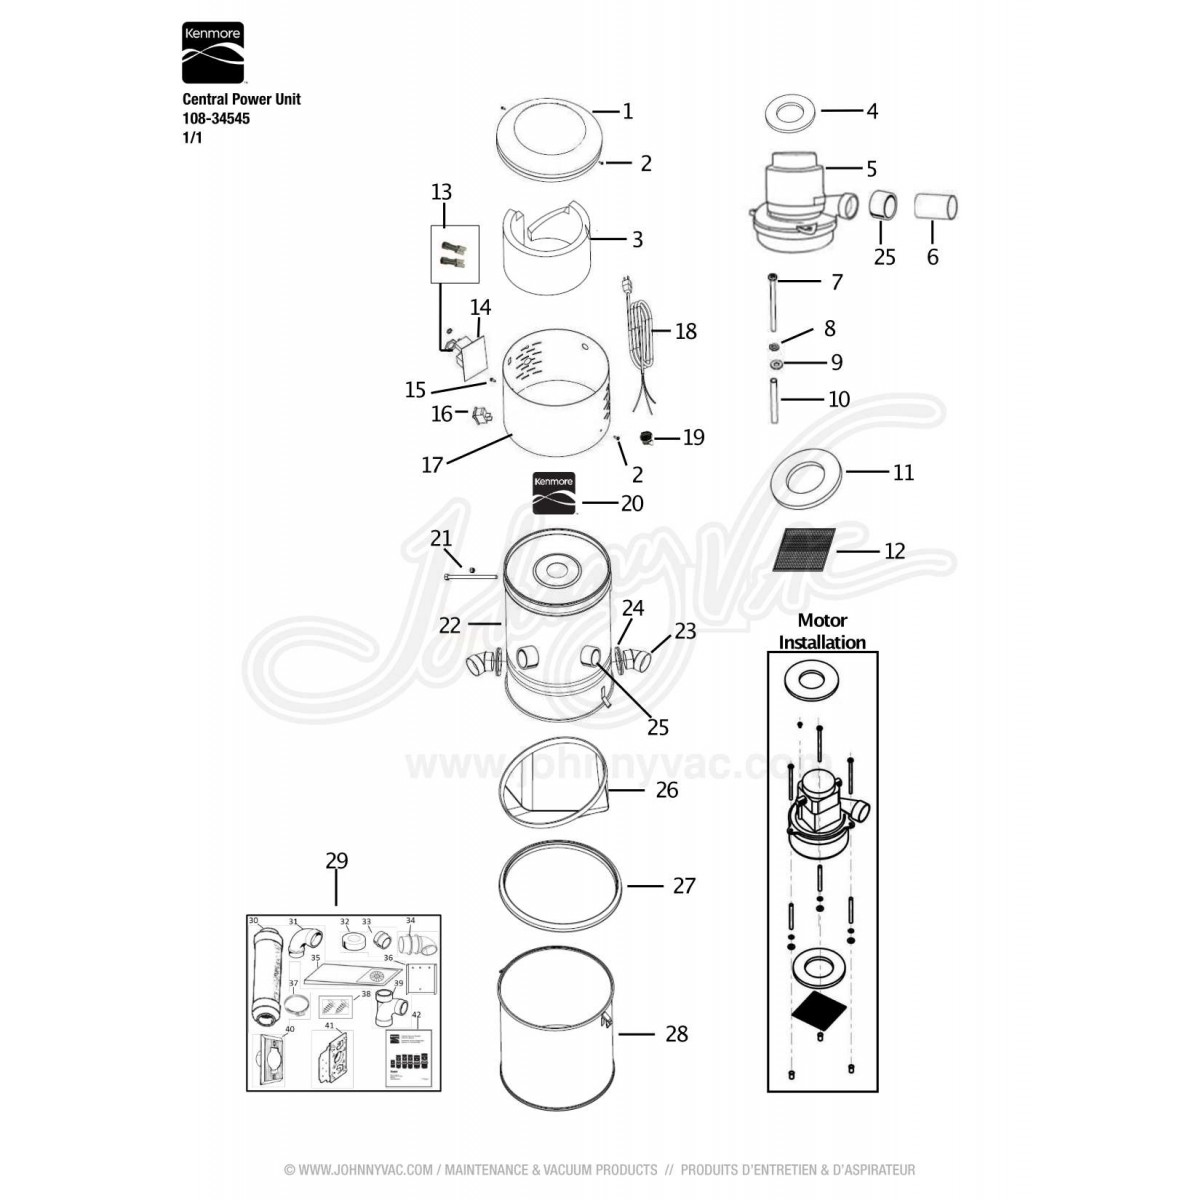 Kenmore Central Vacuums Wiring Diagram And Engine Rexair Rainbow Spring Latch Hinge R 2654 Likewise In Addition Upright Vacuum